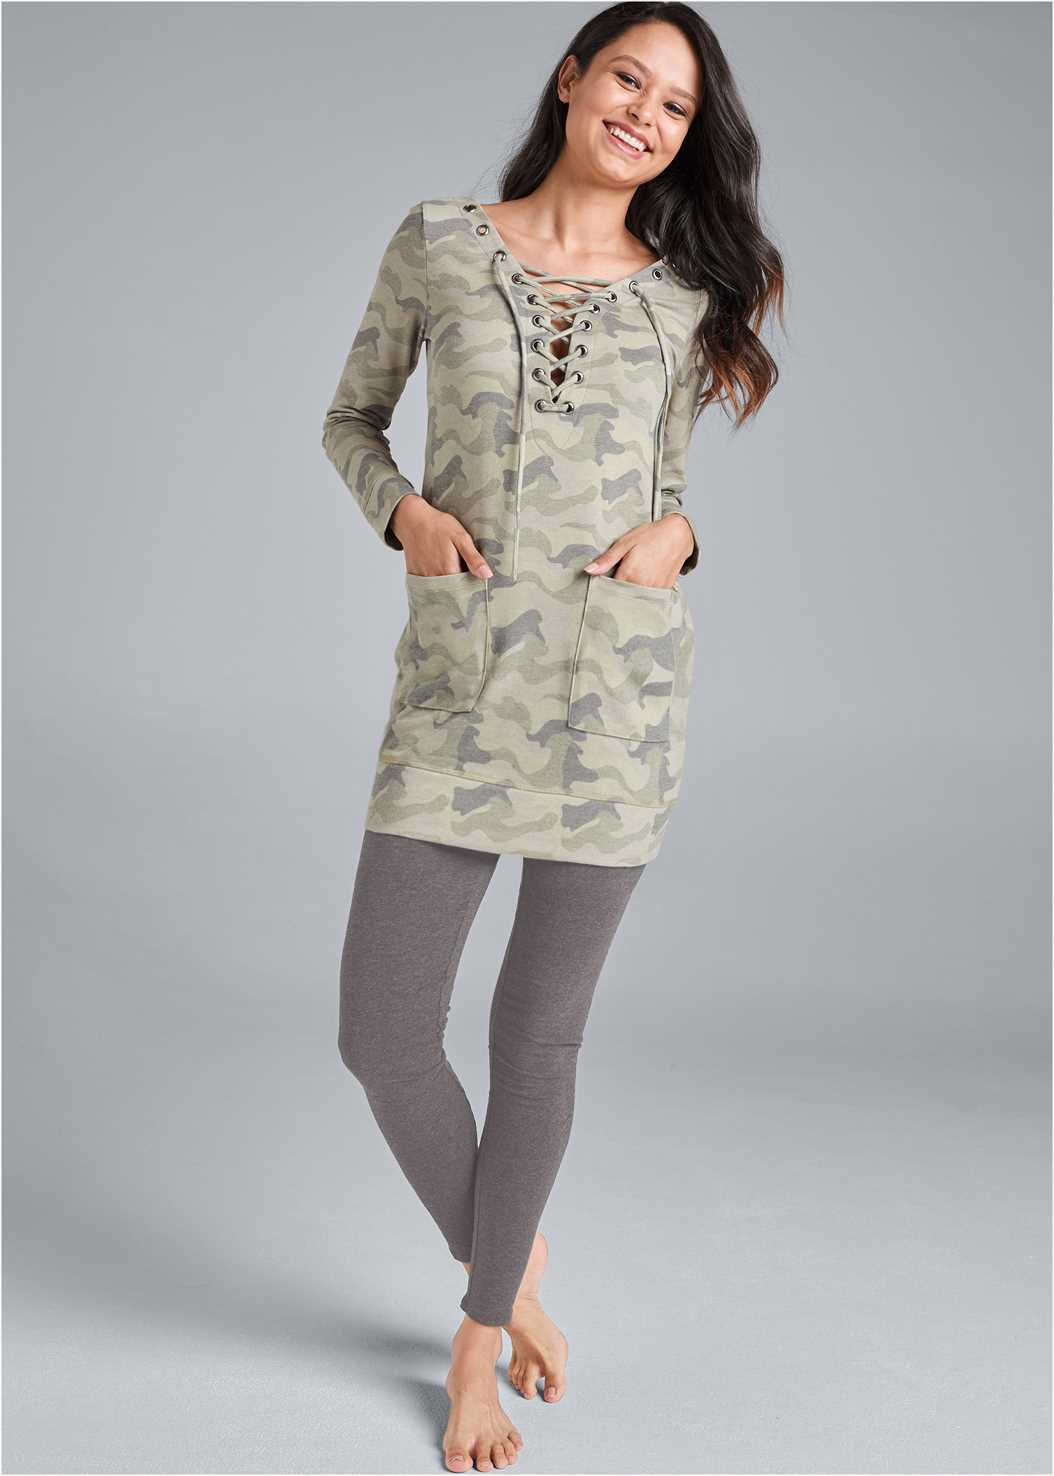 Lace Up French Terry Dress,Basic Leggings